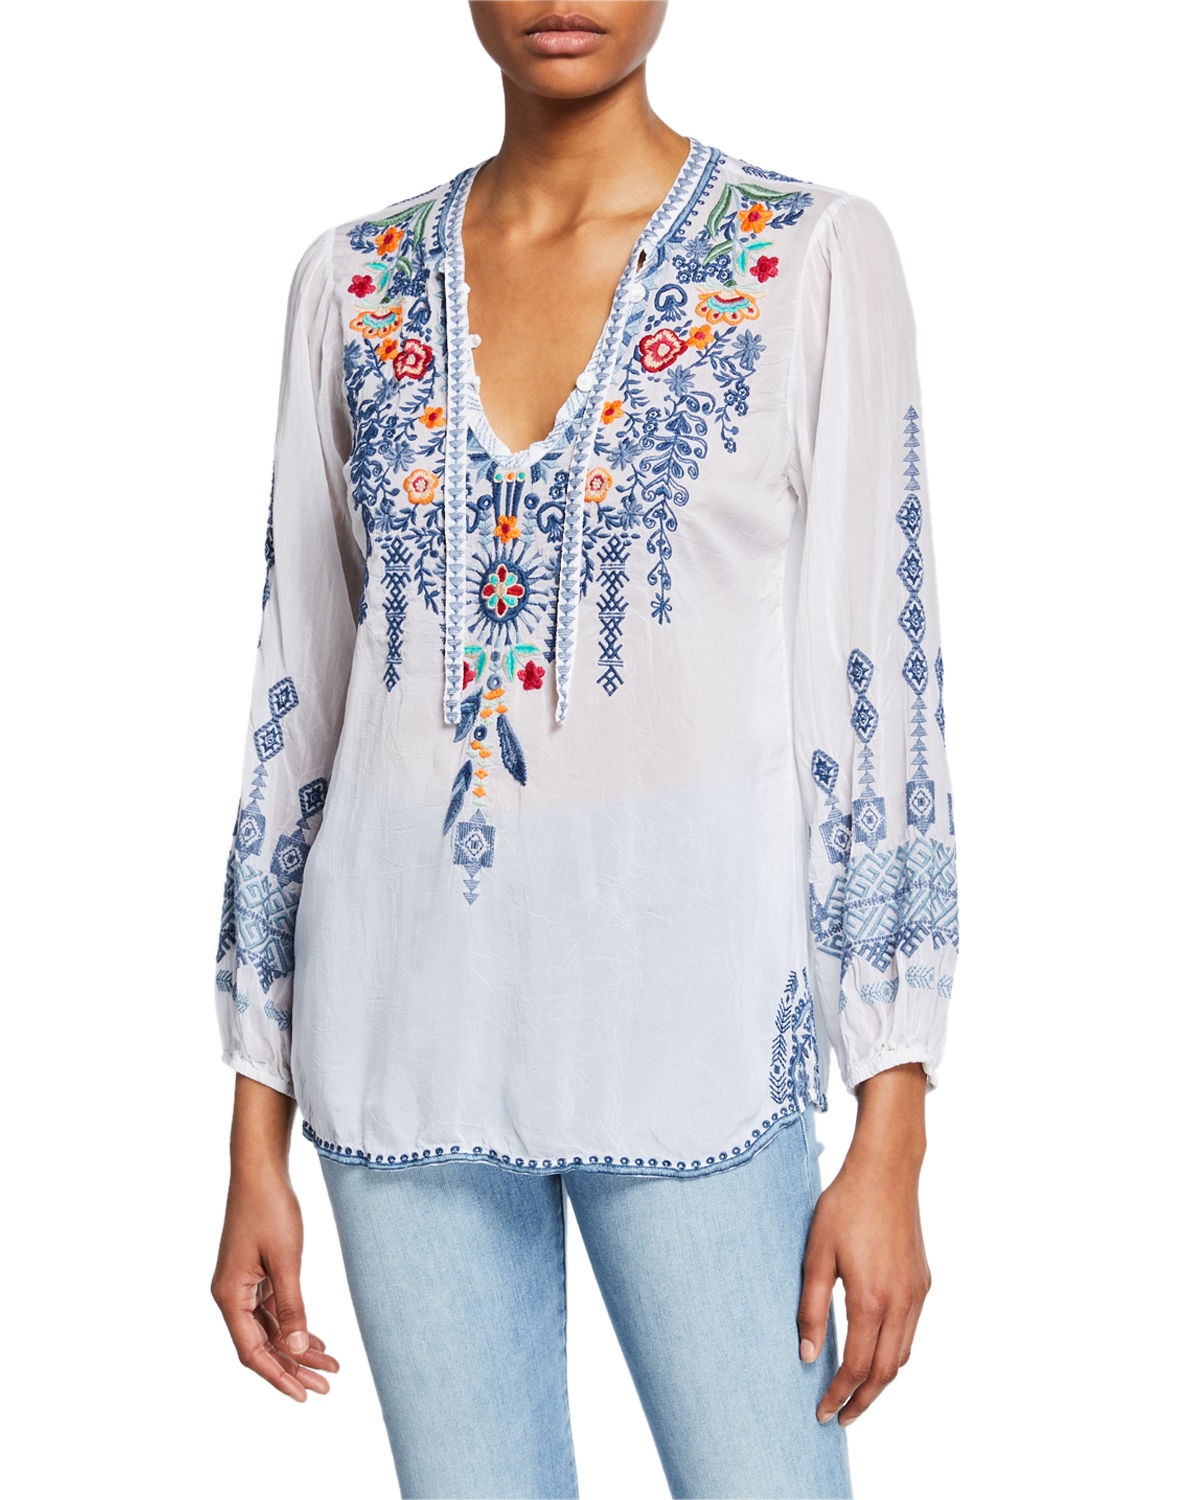 Johnny Was Tops PLUS SIZE CHELSEE EMBROIDERED V-NECK LONG-SLEEVE GEORGETTE BLOUSE